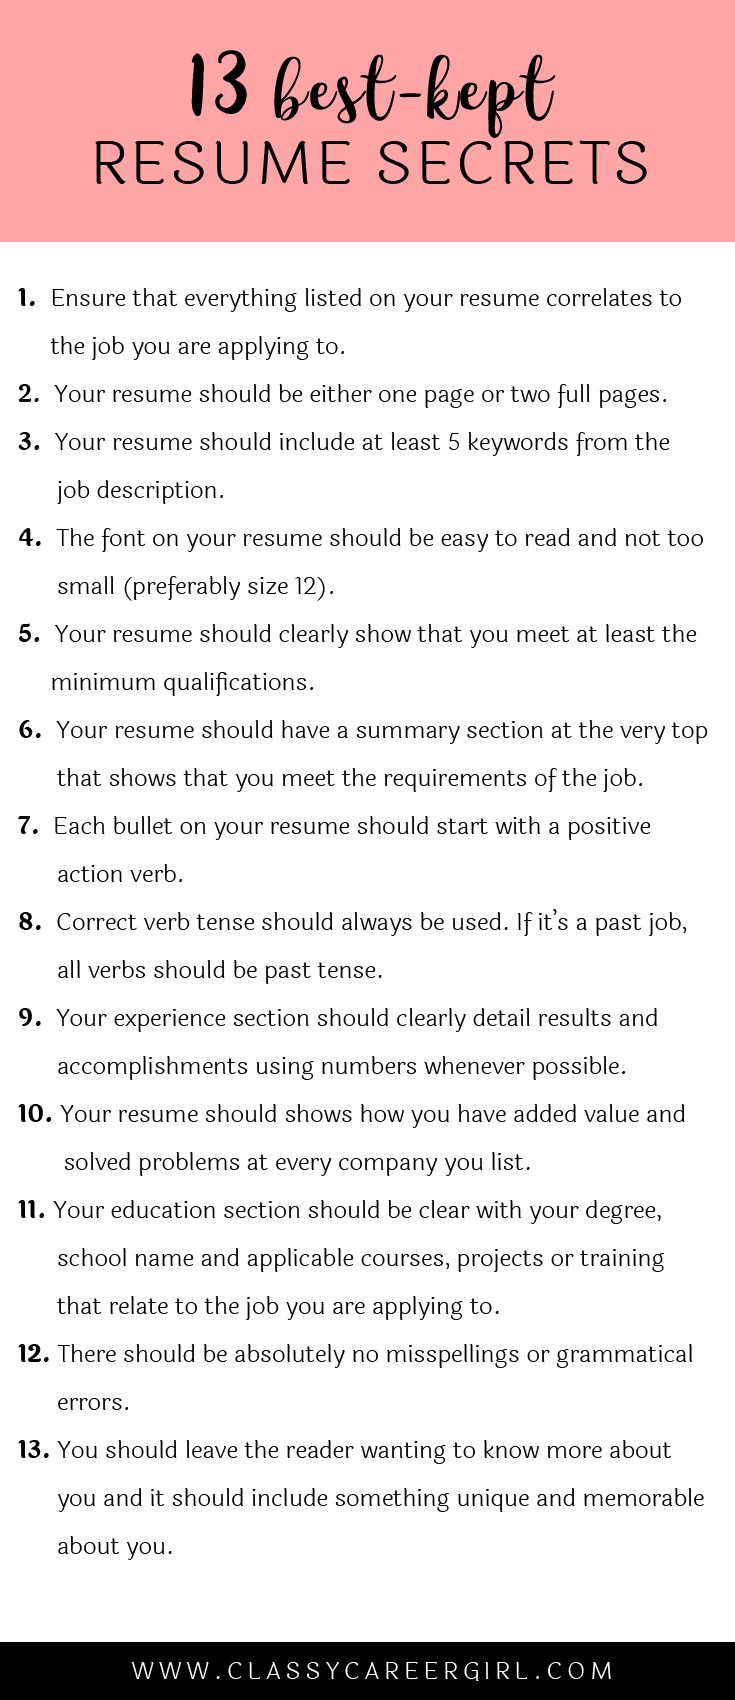 Opposenewapstandardsus  Splendid  Ideas About Resume On Pinterest  Cv Format Resume Cv And  With Exciting Some Hiring Managers Will Toss Your Resume Out If You Dont Know These  With Astonishing Key Words For Resumes Also Contemporary Resume In Addition Rsync Resume And Resume Medical Assistant As Well As Clinical Research Associate Resume Additionally Resume For College Graduate From Pinterestcom With Opposenewapstandardsus  Exciting  Ideas About Resume On Pinterest  Cv Format Resume Cv And  With Astonishing Some Hiring Managers Will Toss Your Resume Out If You Dont Know These  And Splendid Key Words For Resumes Also Contemporary Resume In Addition Rsync Resume From Pinterestcom